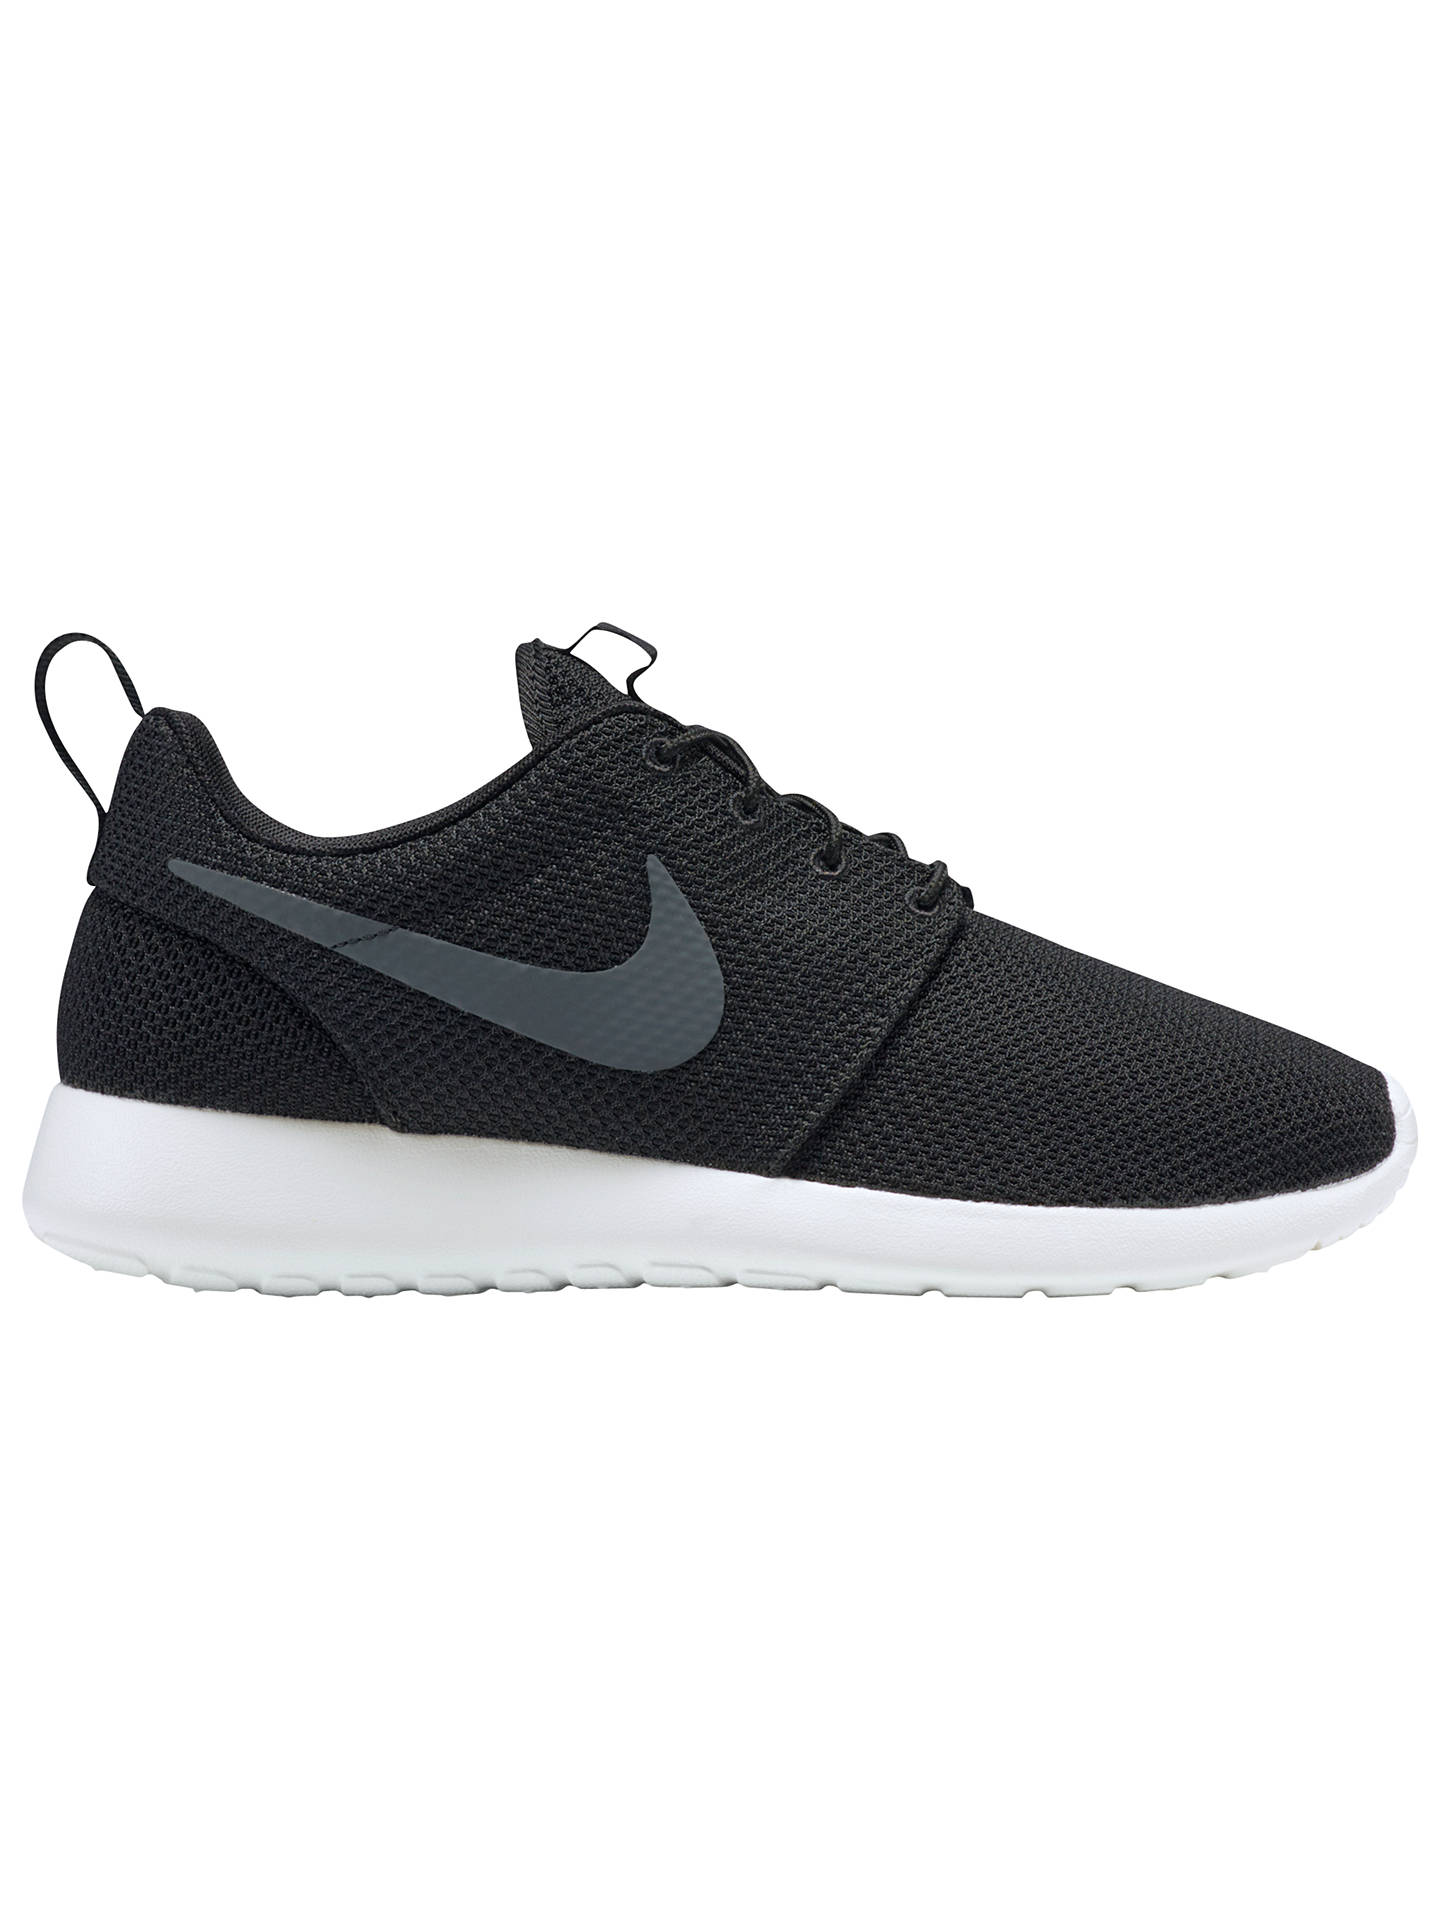 91738c8a0d3d Buy Nike Roshe One Men s Trainers